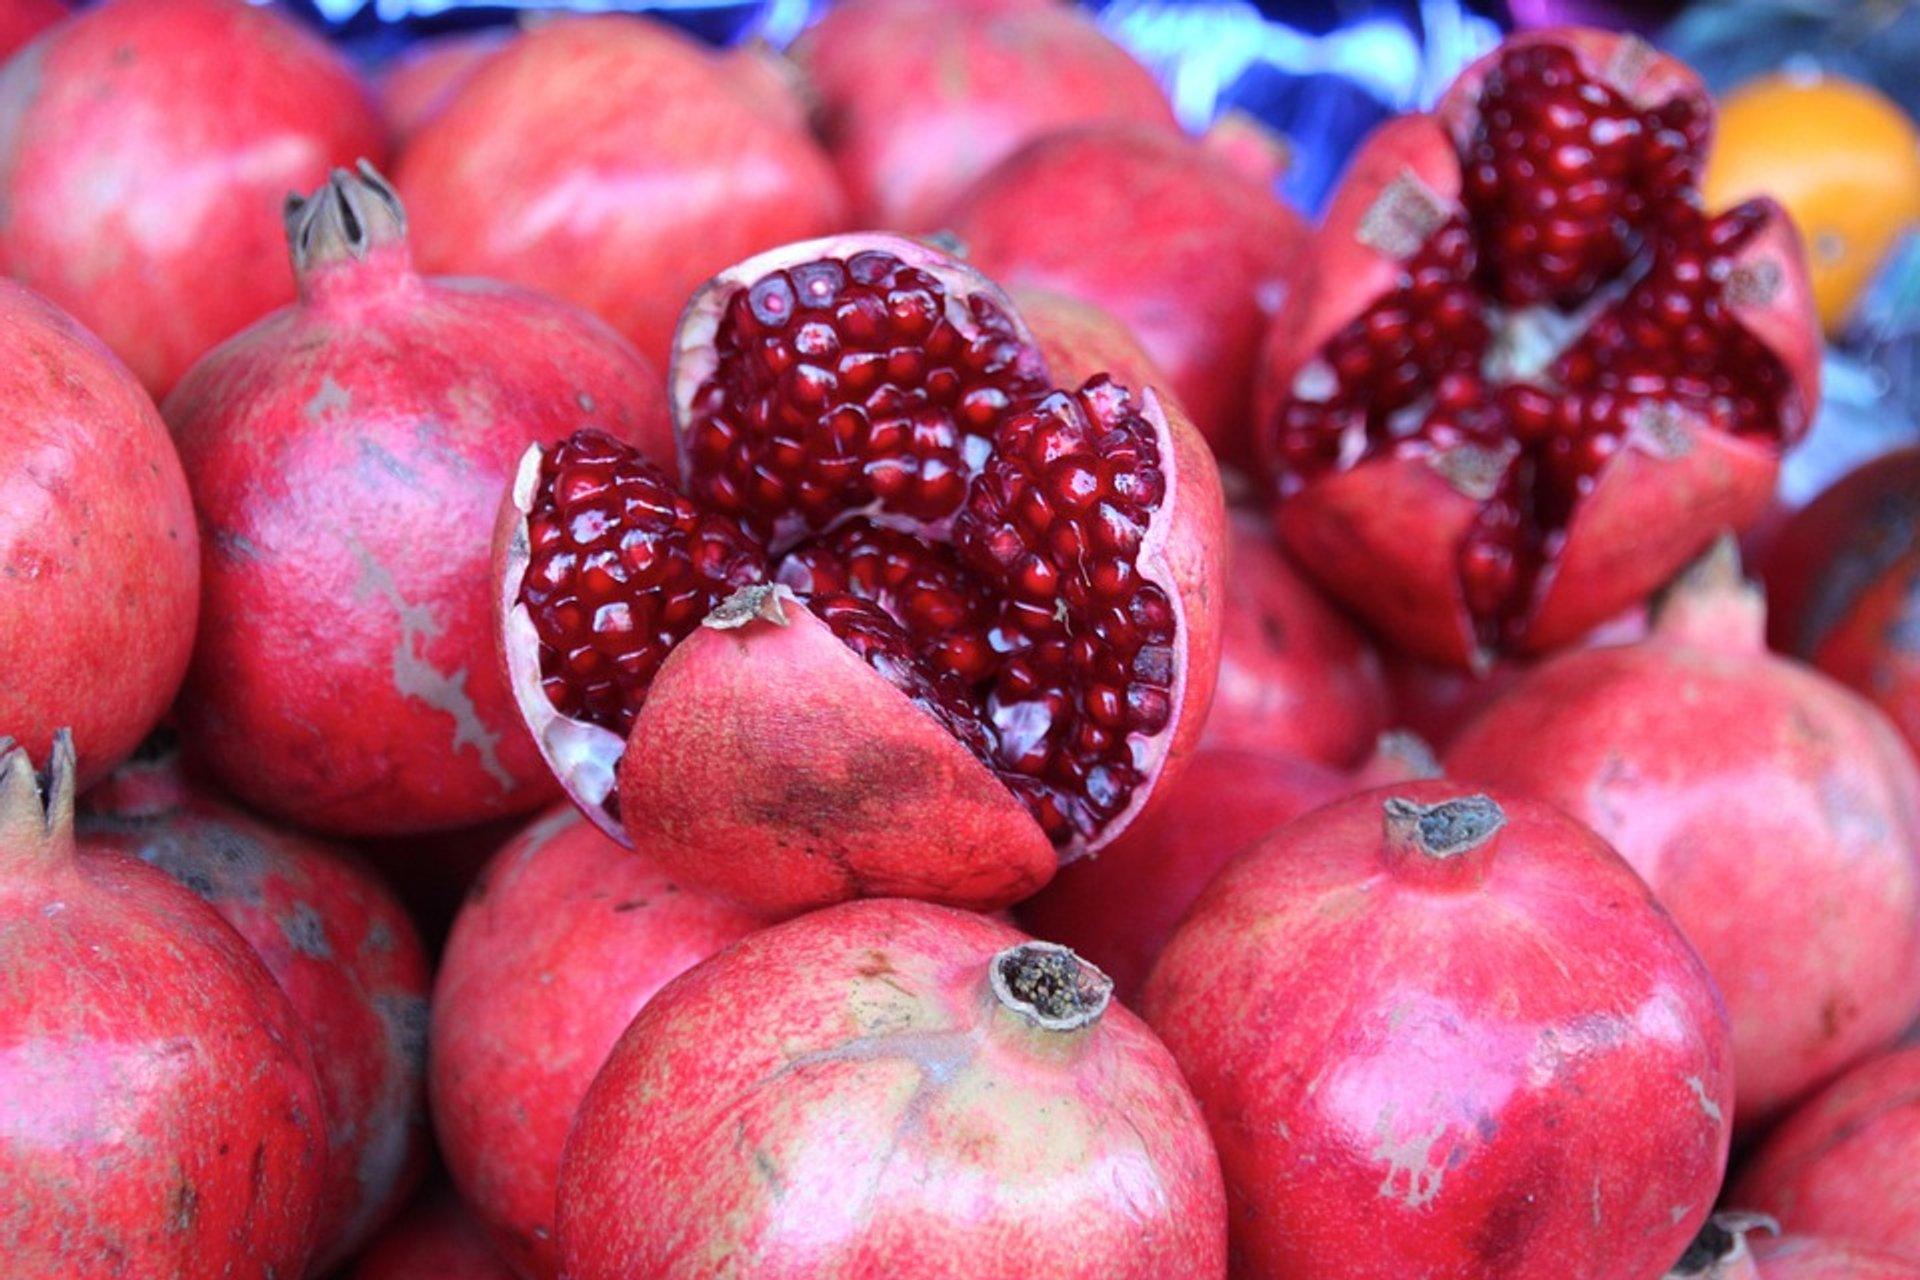 Pomegranate in Montenegro 2020 - Best Time